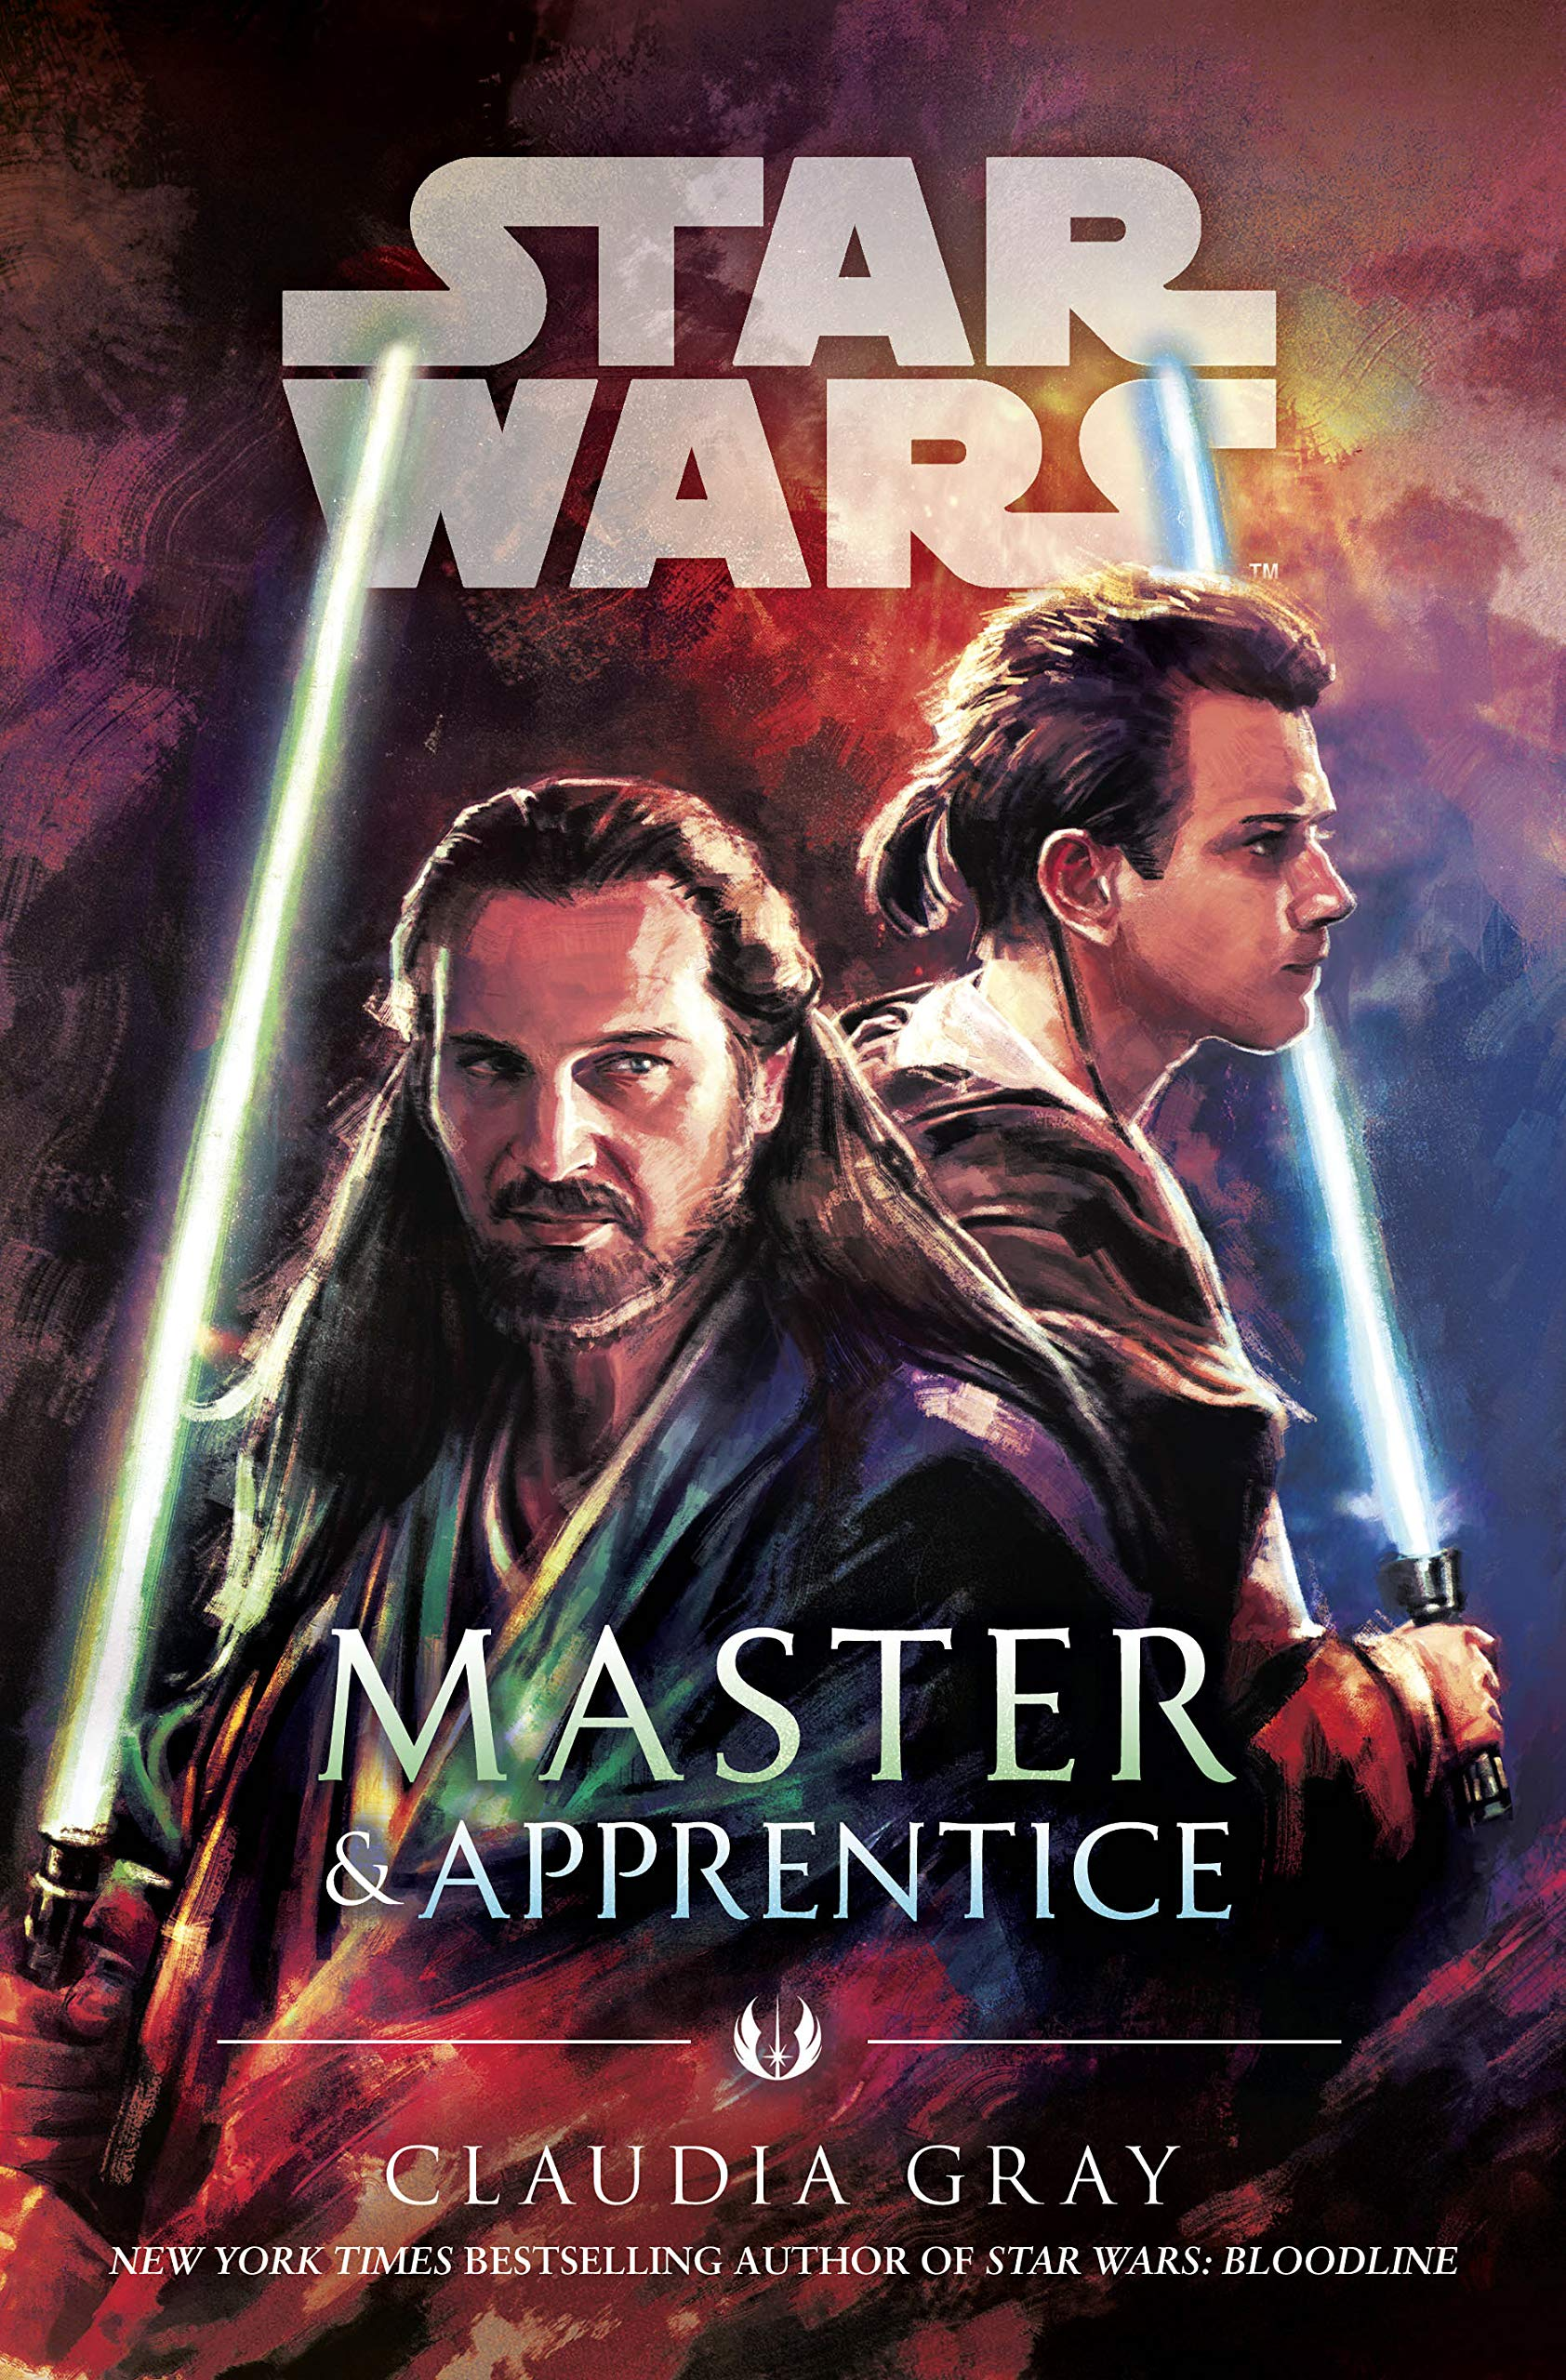 Master and Apprentice (Star Wars): Amazon.co.uk: Gray, Claudia ...